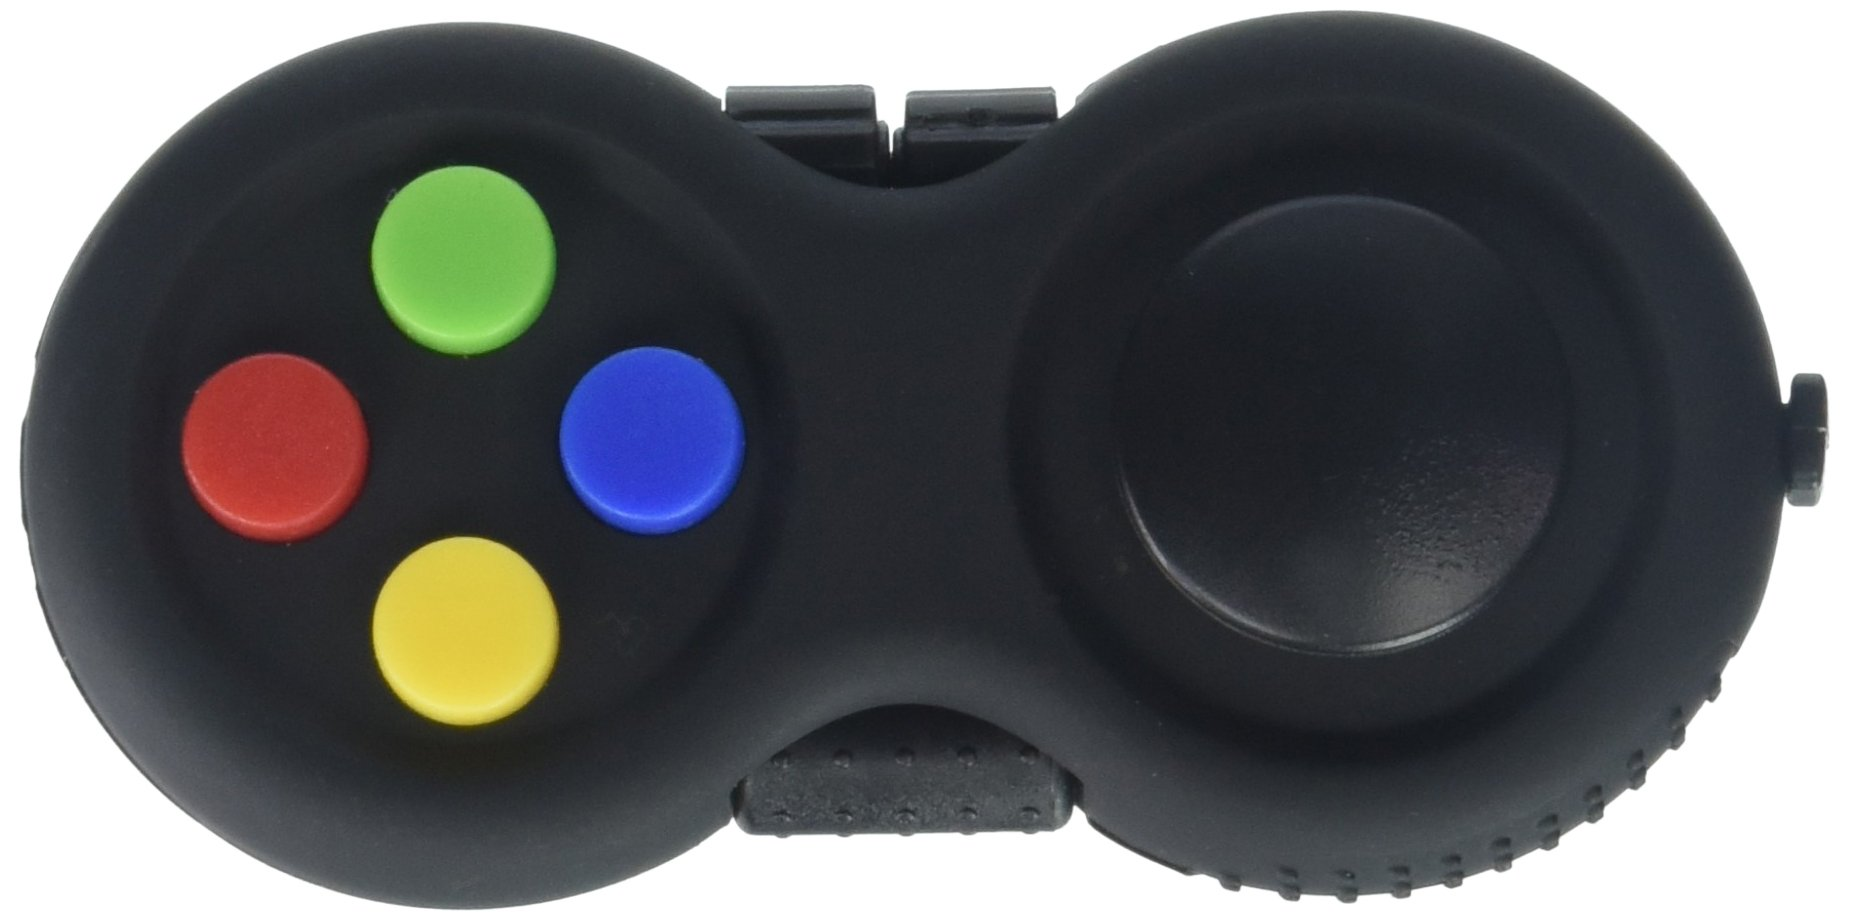 Fidget Pad - 9 Fidget Features (more than Fidget Cube) - Perfect For Skin Picking, ADD, ADHD, Anxiety and Stress Relief - Multi Color Rainbow on Black - Prime Ready and Shipped by Amazon